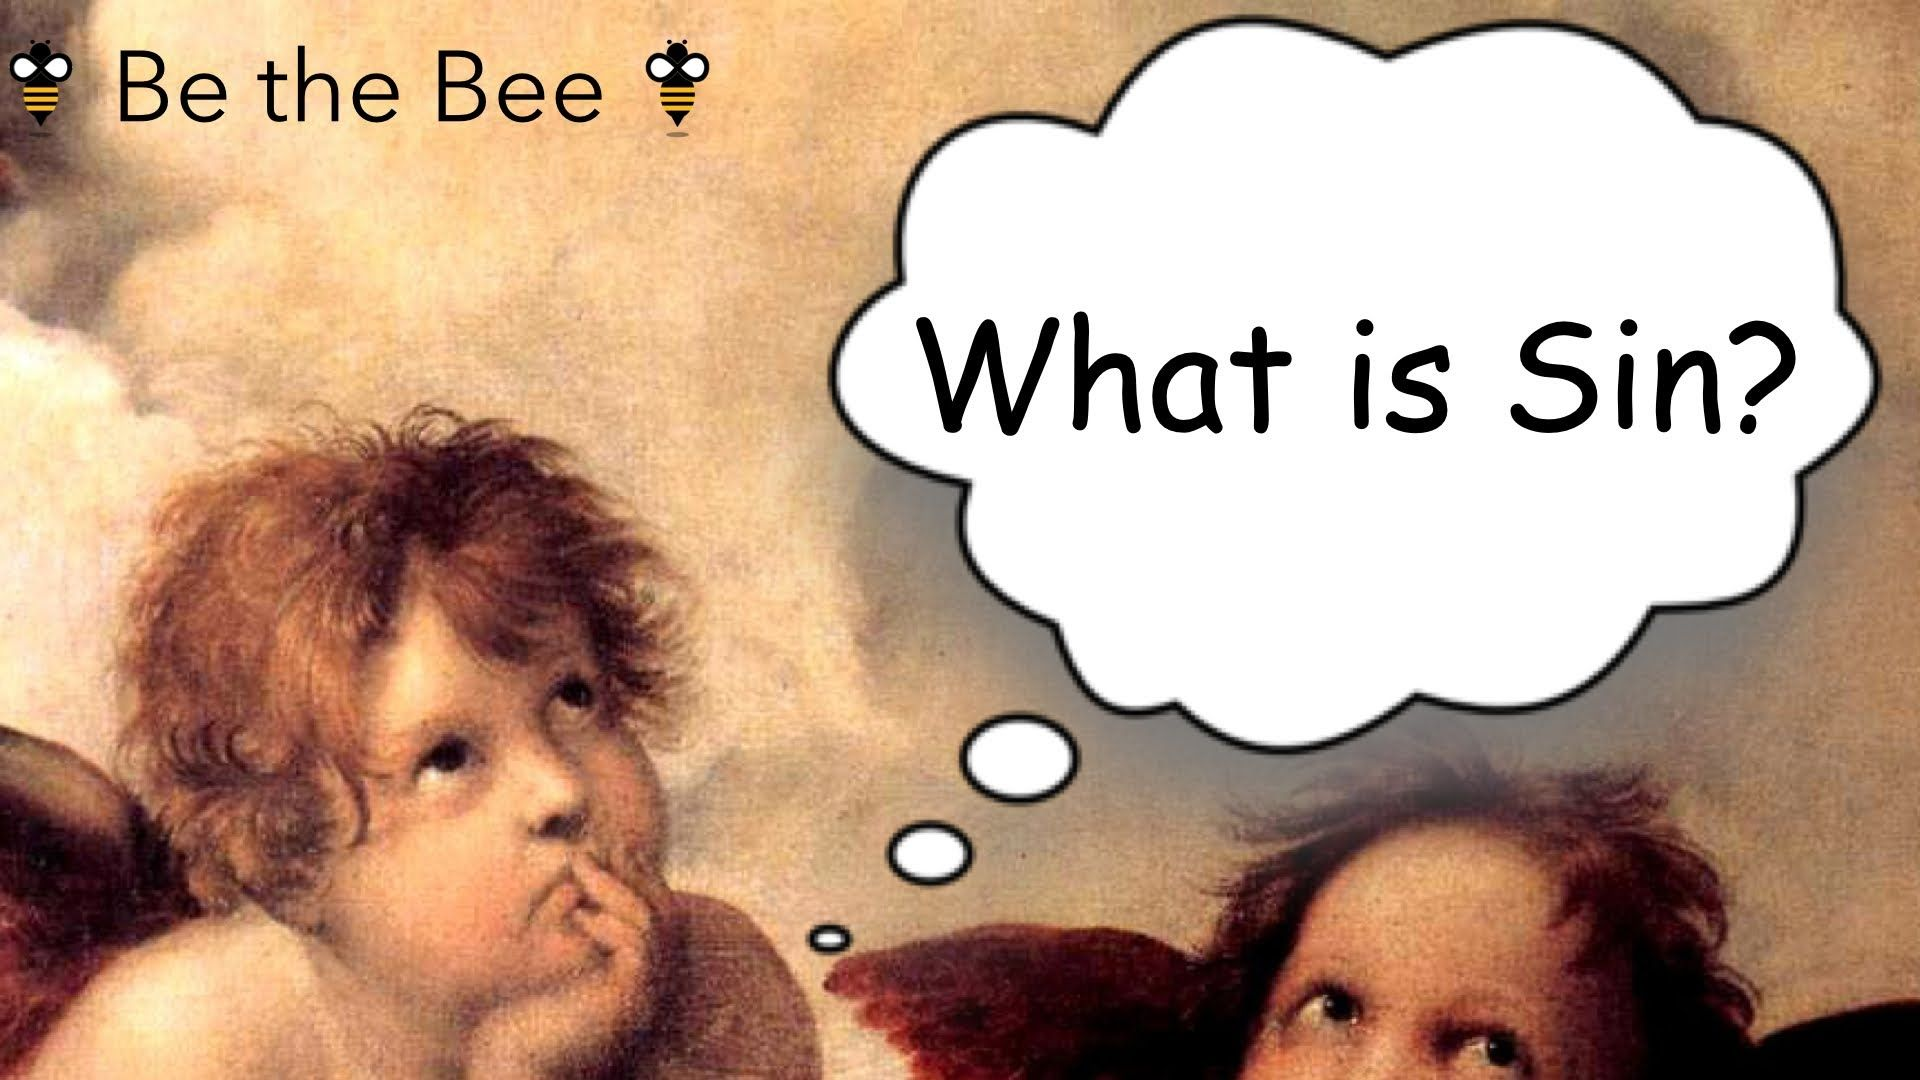 Be the Bee - What is Sin?